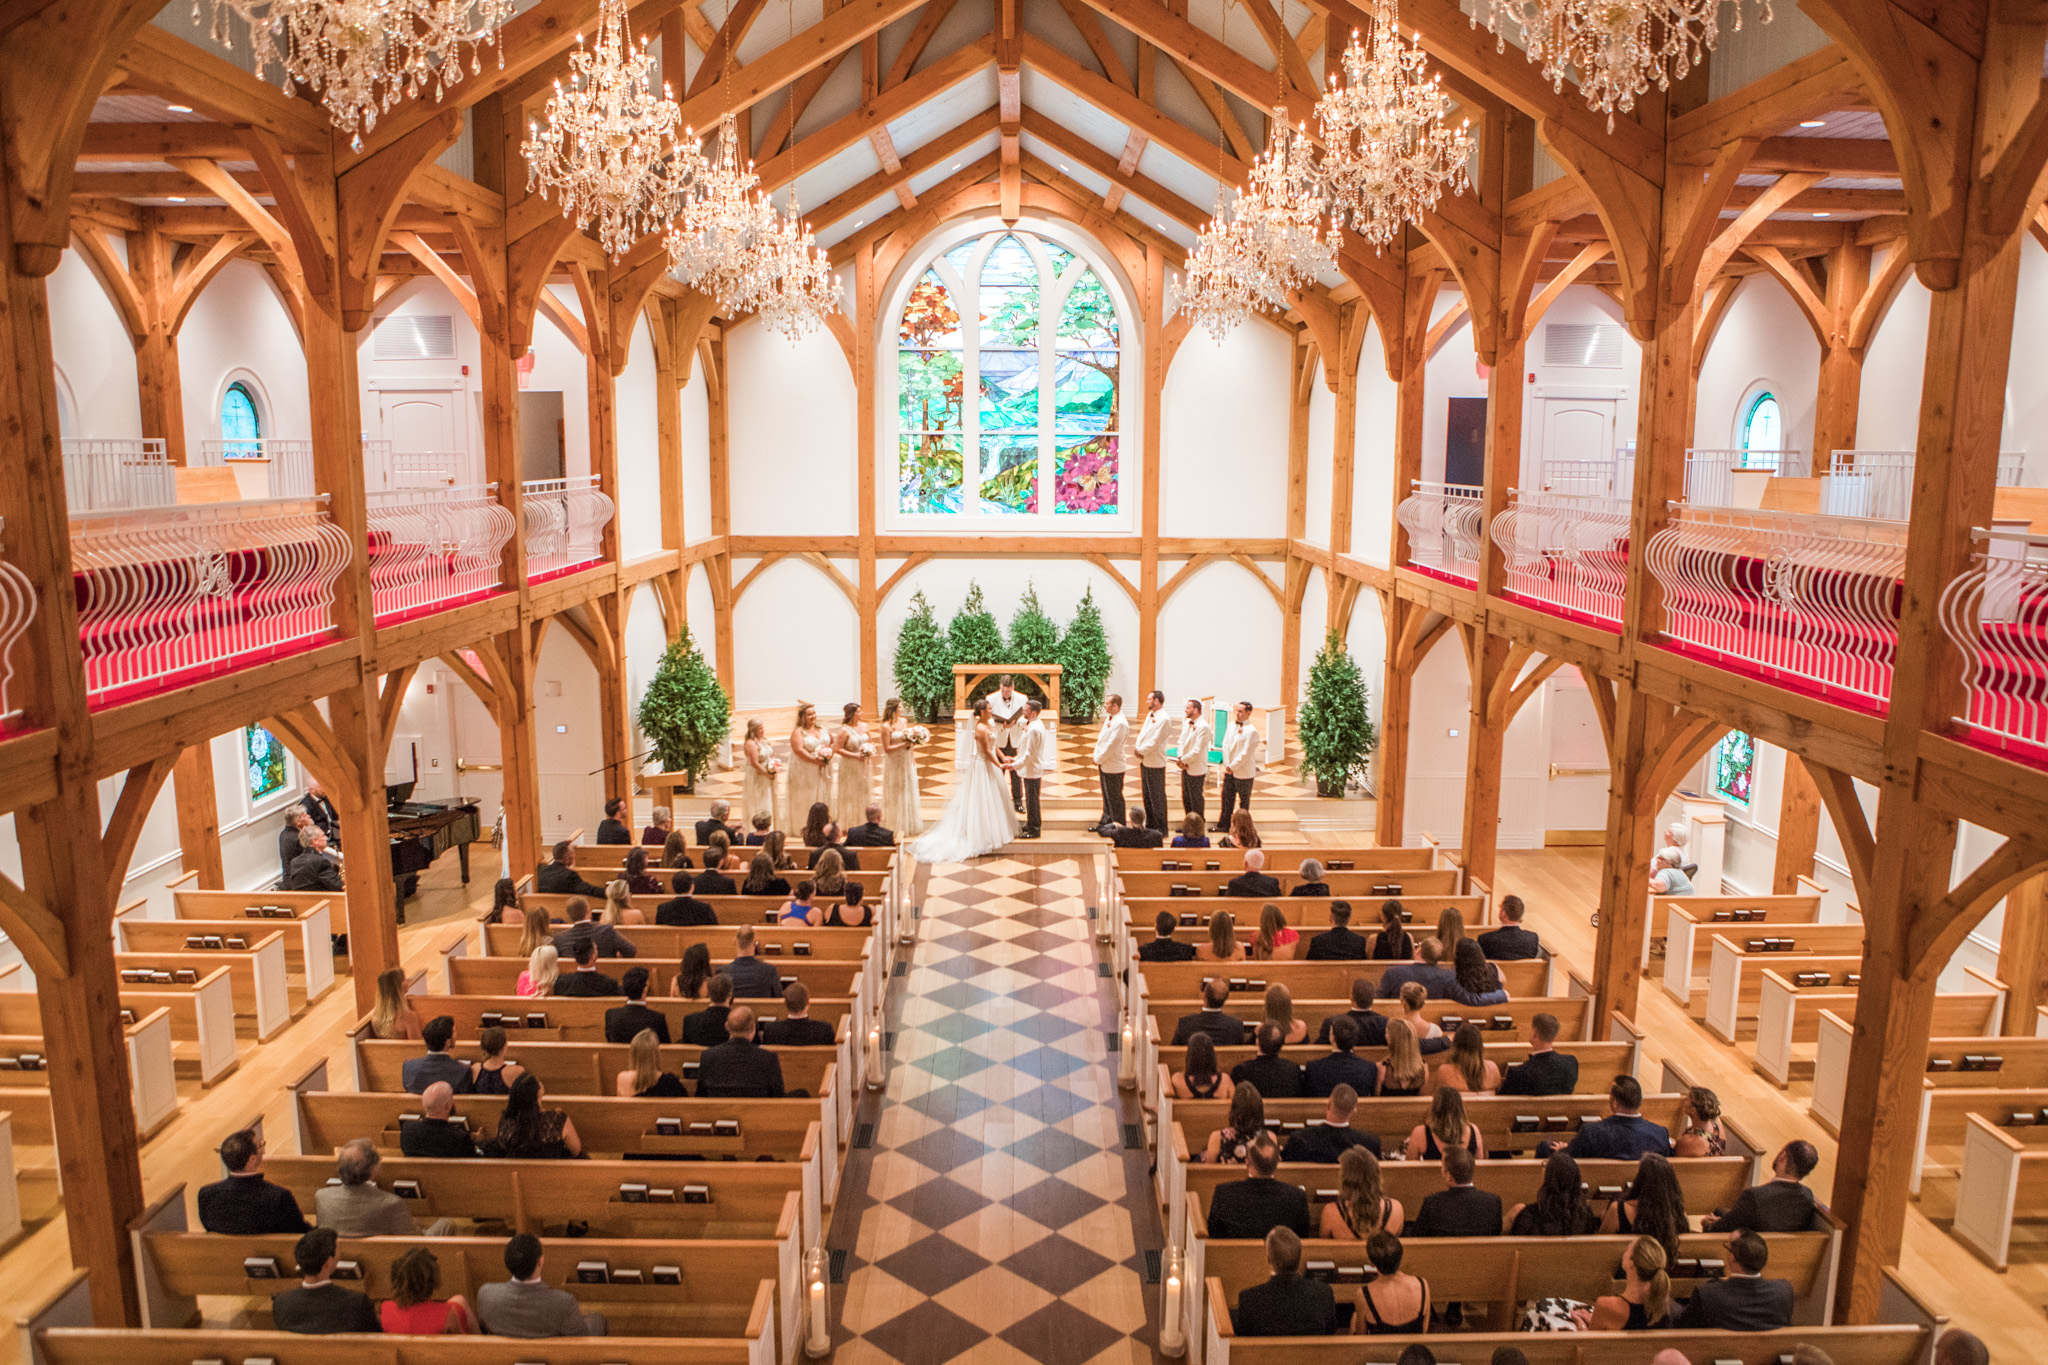 I always make sure to get a wide shot from up in the balcony at The Chapel.